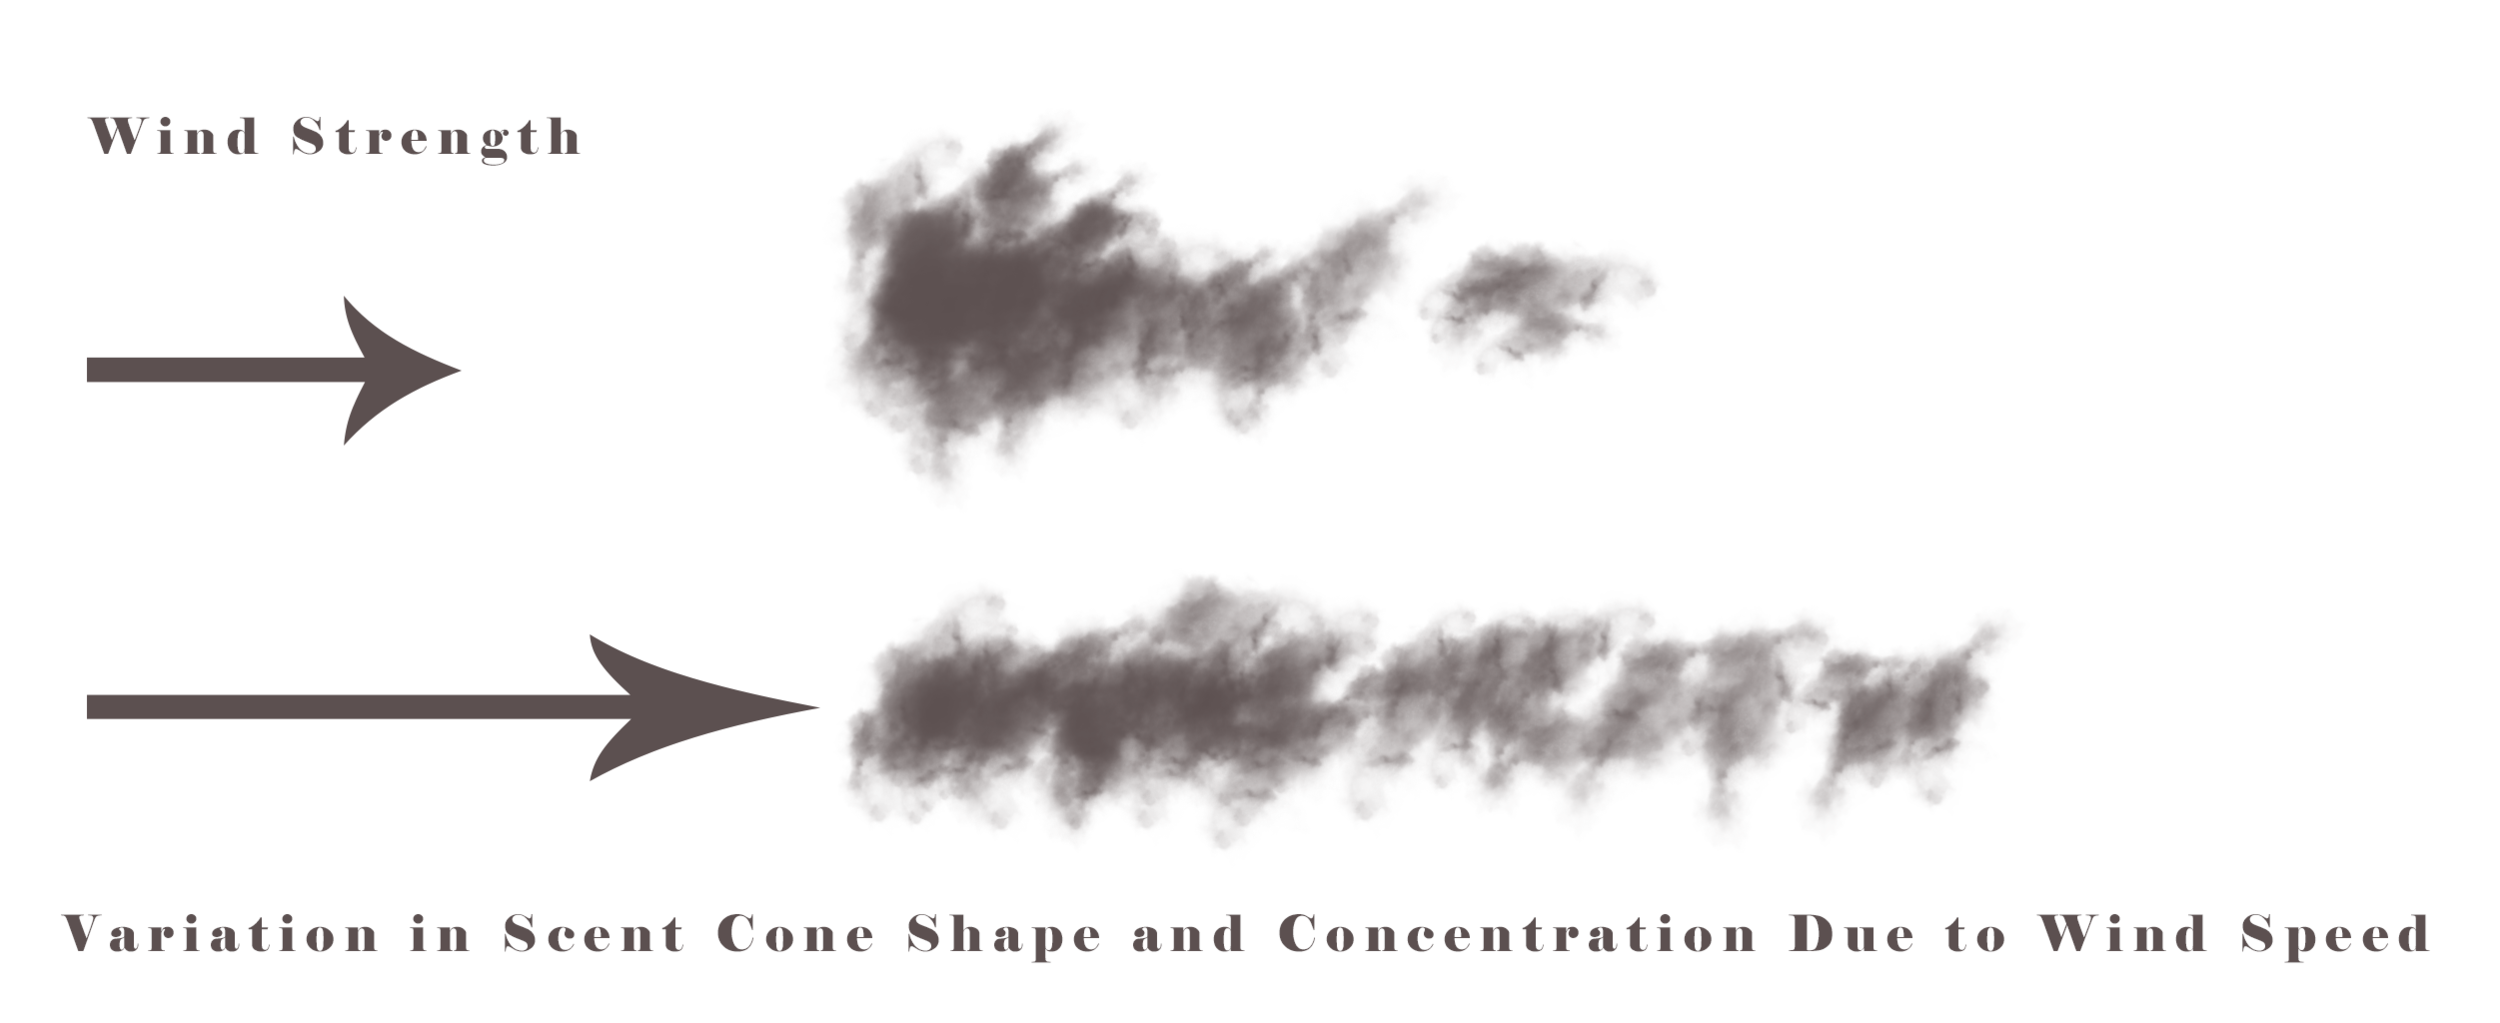 The Shape of the scent cone can be affected by the strength of the wind.